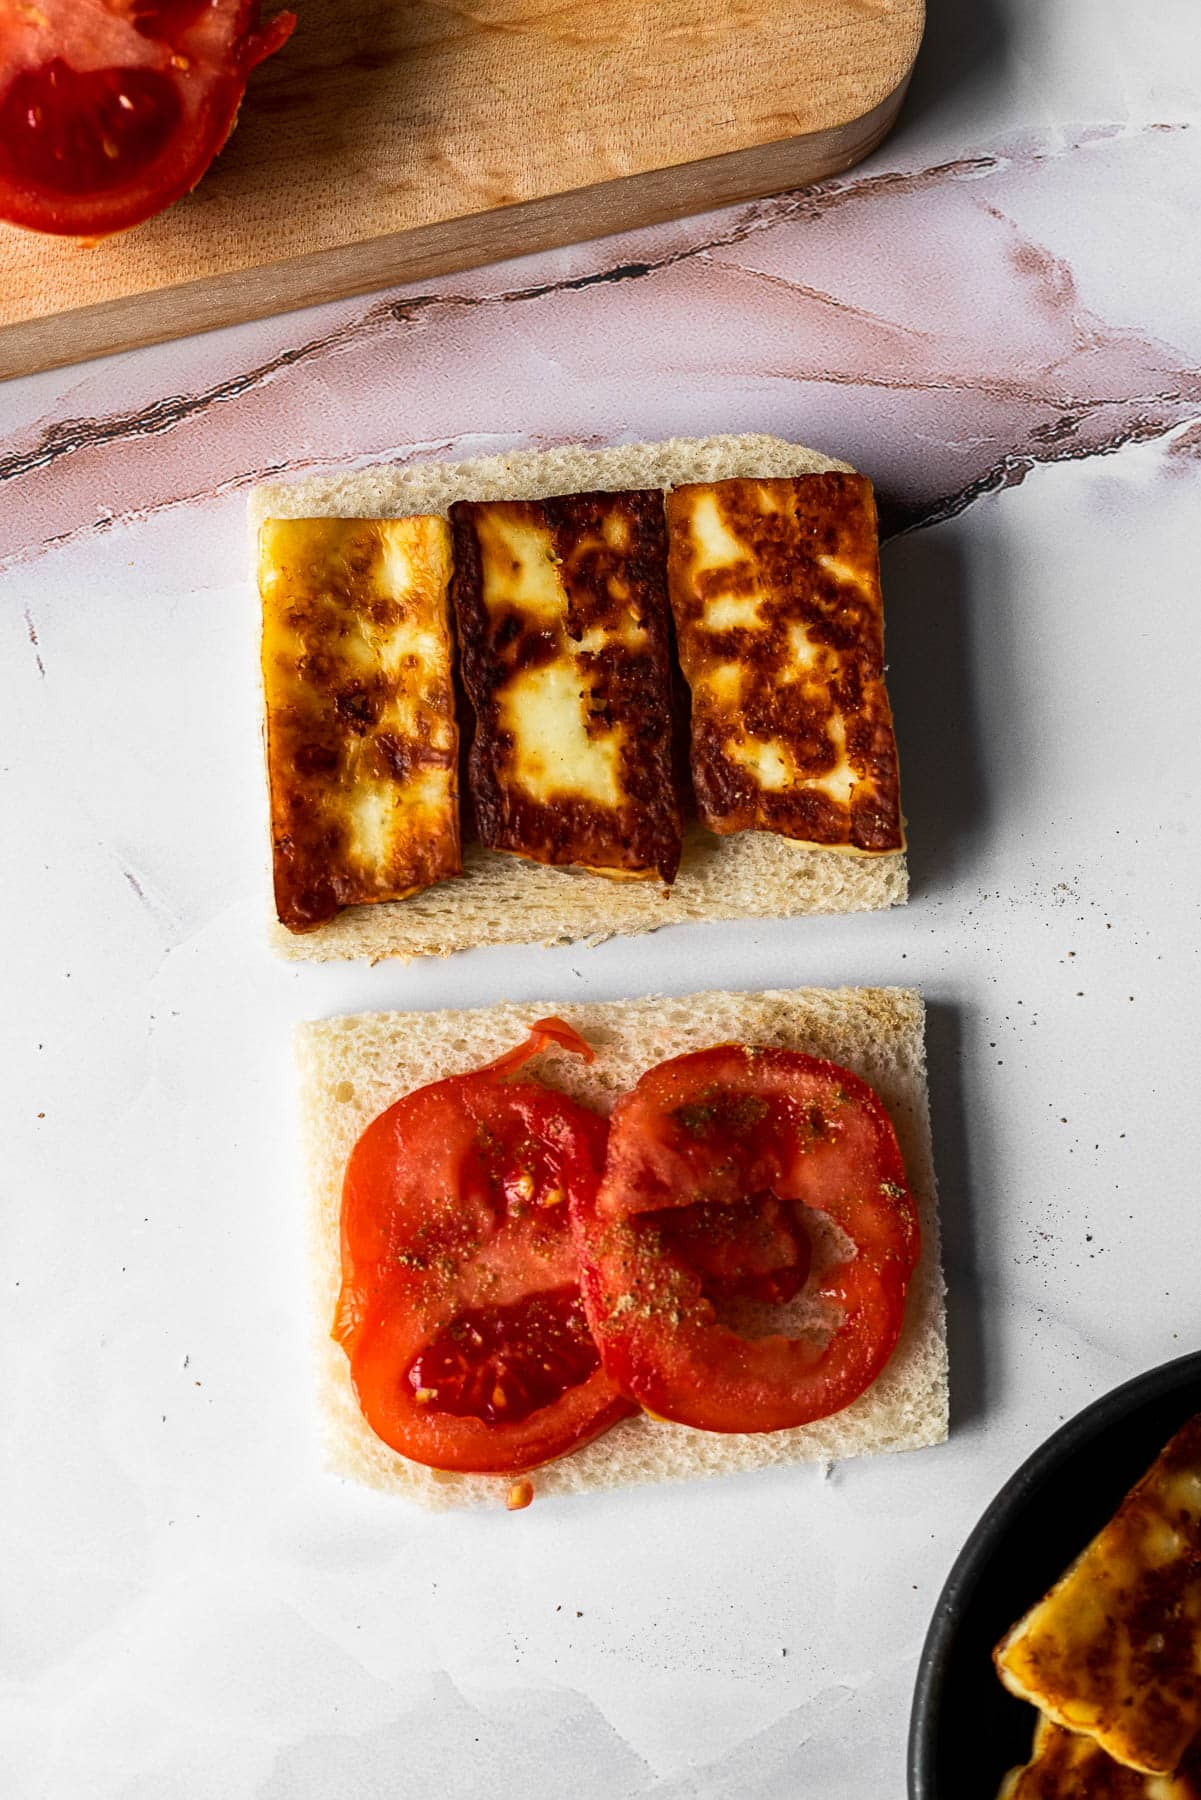 crustless white bread slices with fried paneer on one slice and tomato with chaat masala on the other slice